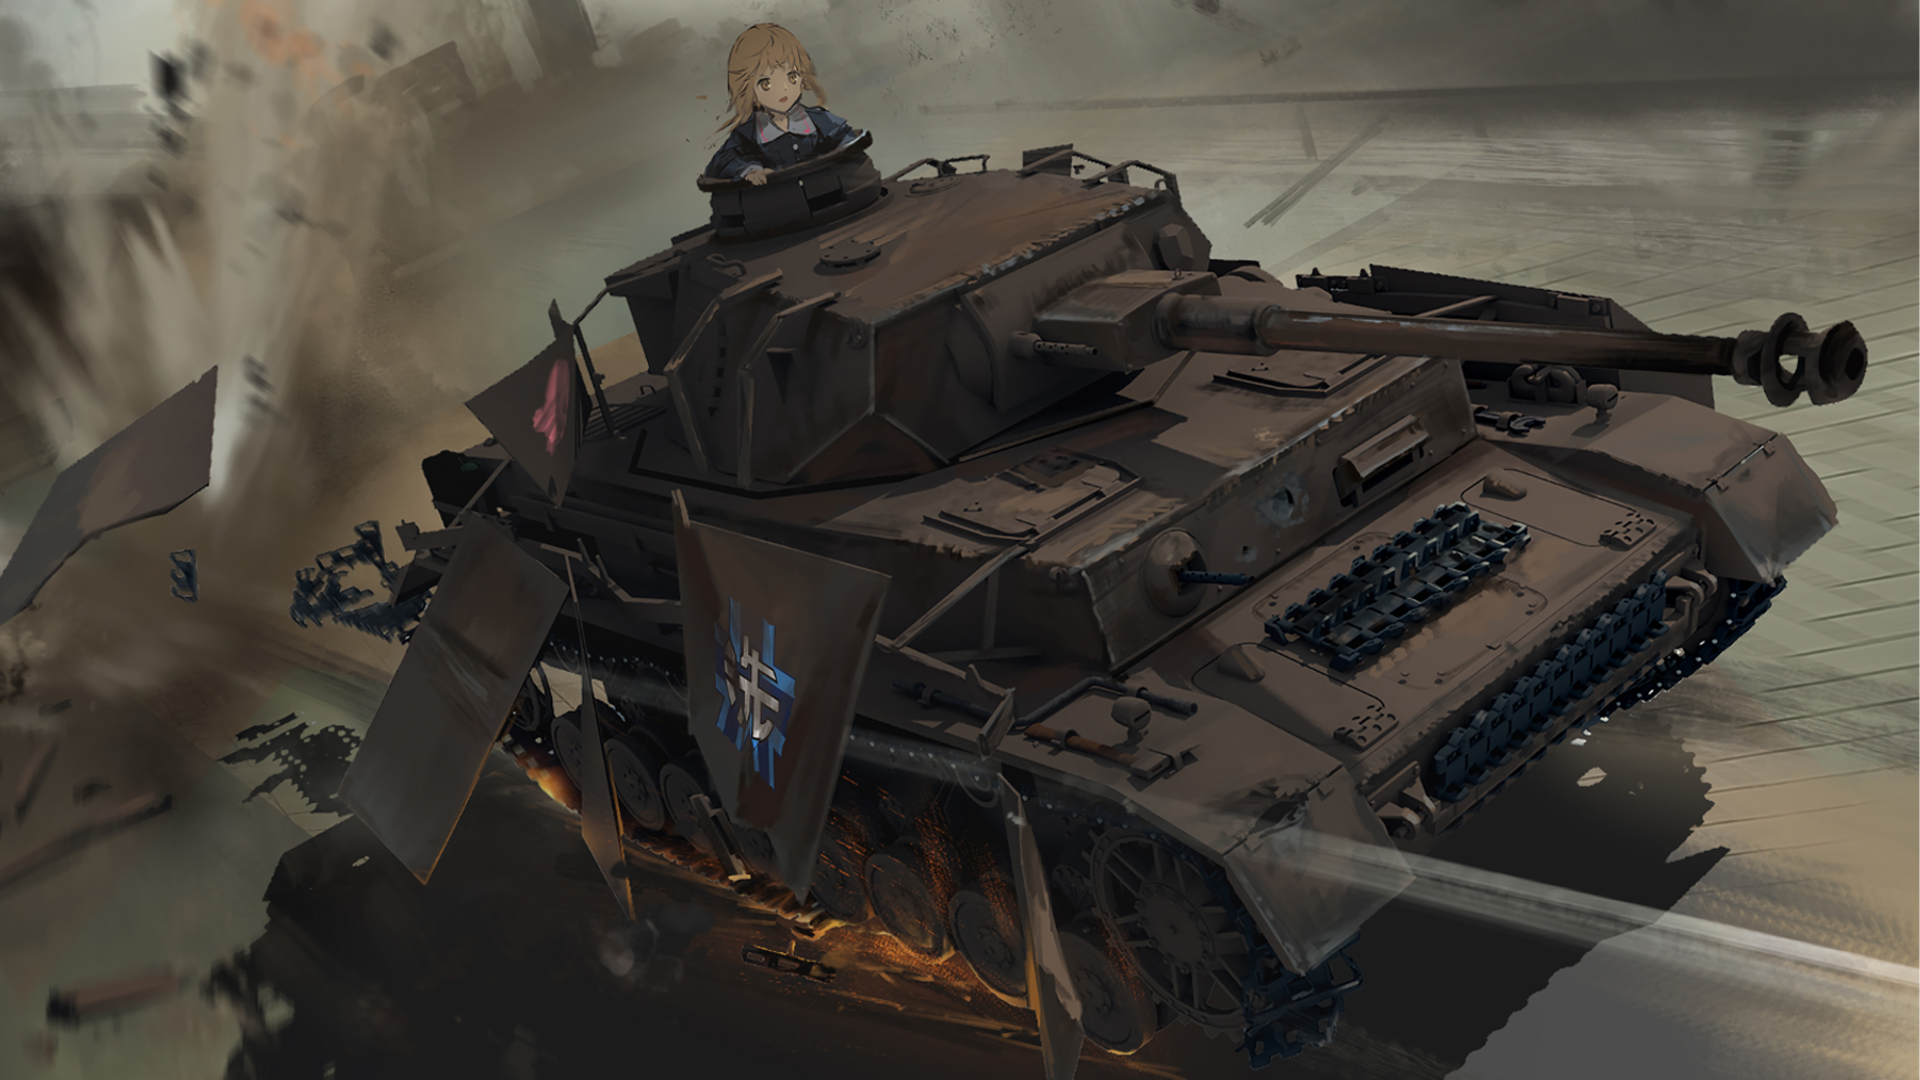 Drifting Girls Und Panzer 1920x1080 Need Iphone 6s Plus